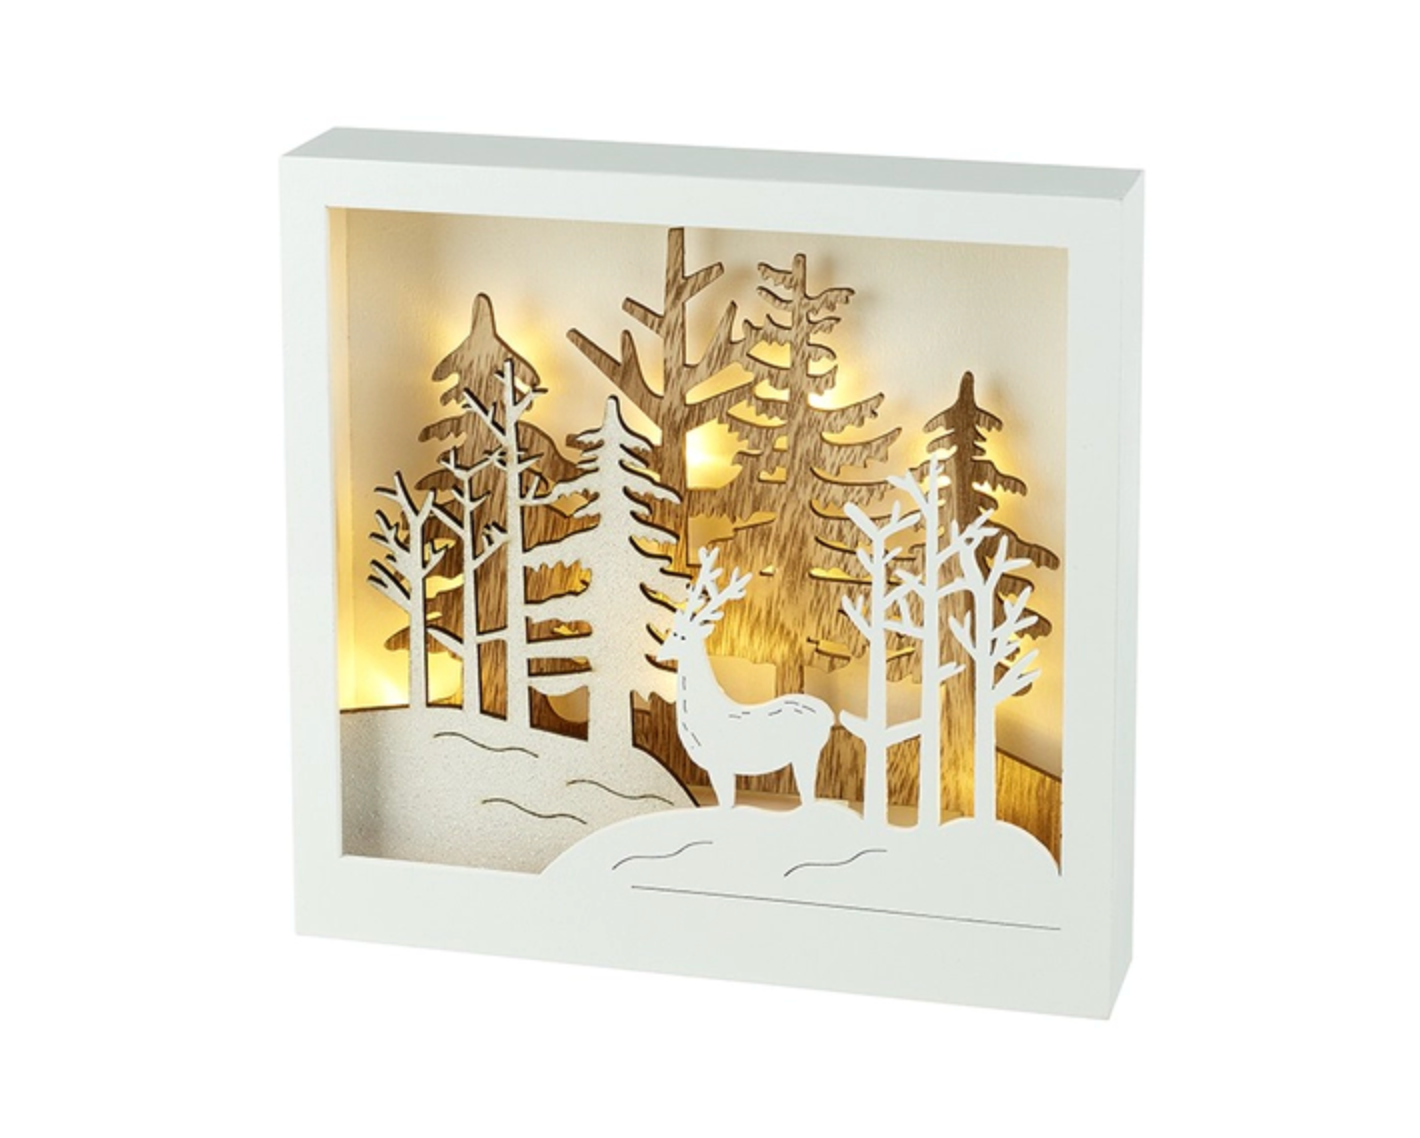 Heaven Sends Led Square Light Up Wooden Forest Scene with Deer